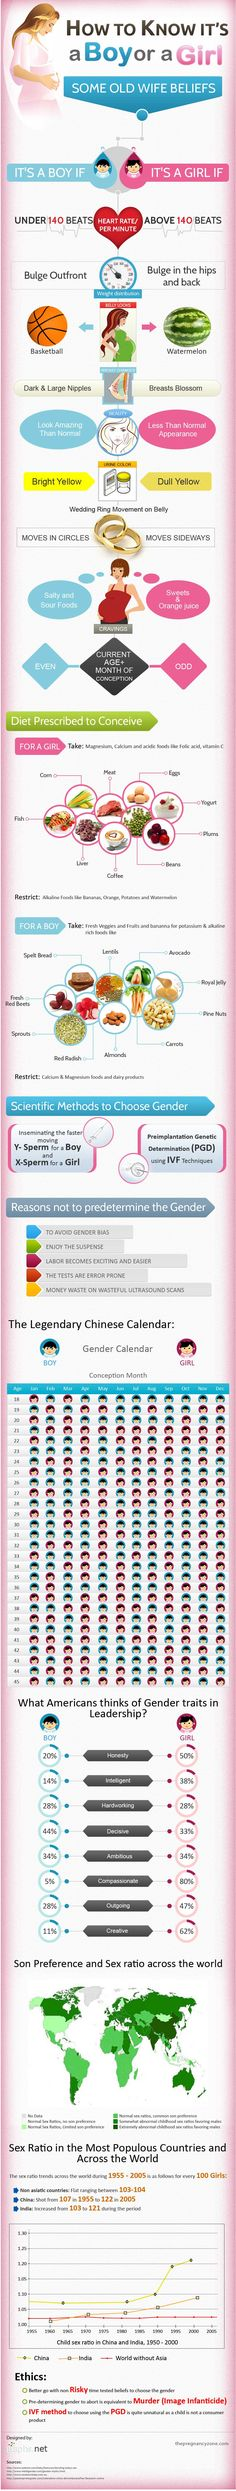 Haha...interesting! There are ways you can know whether you are having a baby girl or a boy without using the USG. Your physical appearance as well as other subtle sign can be used pretty reliably to determine whether you are going to paint the baby's room blue or pink. The infographic also contains information on what you can do in term of dieting to nudge the gender selection towards your wish.